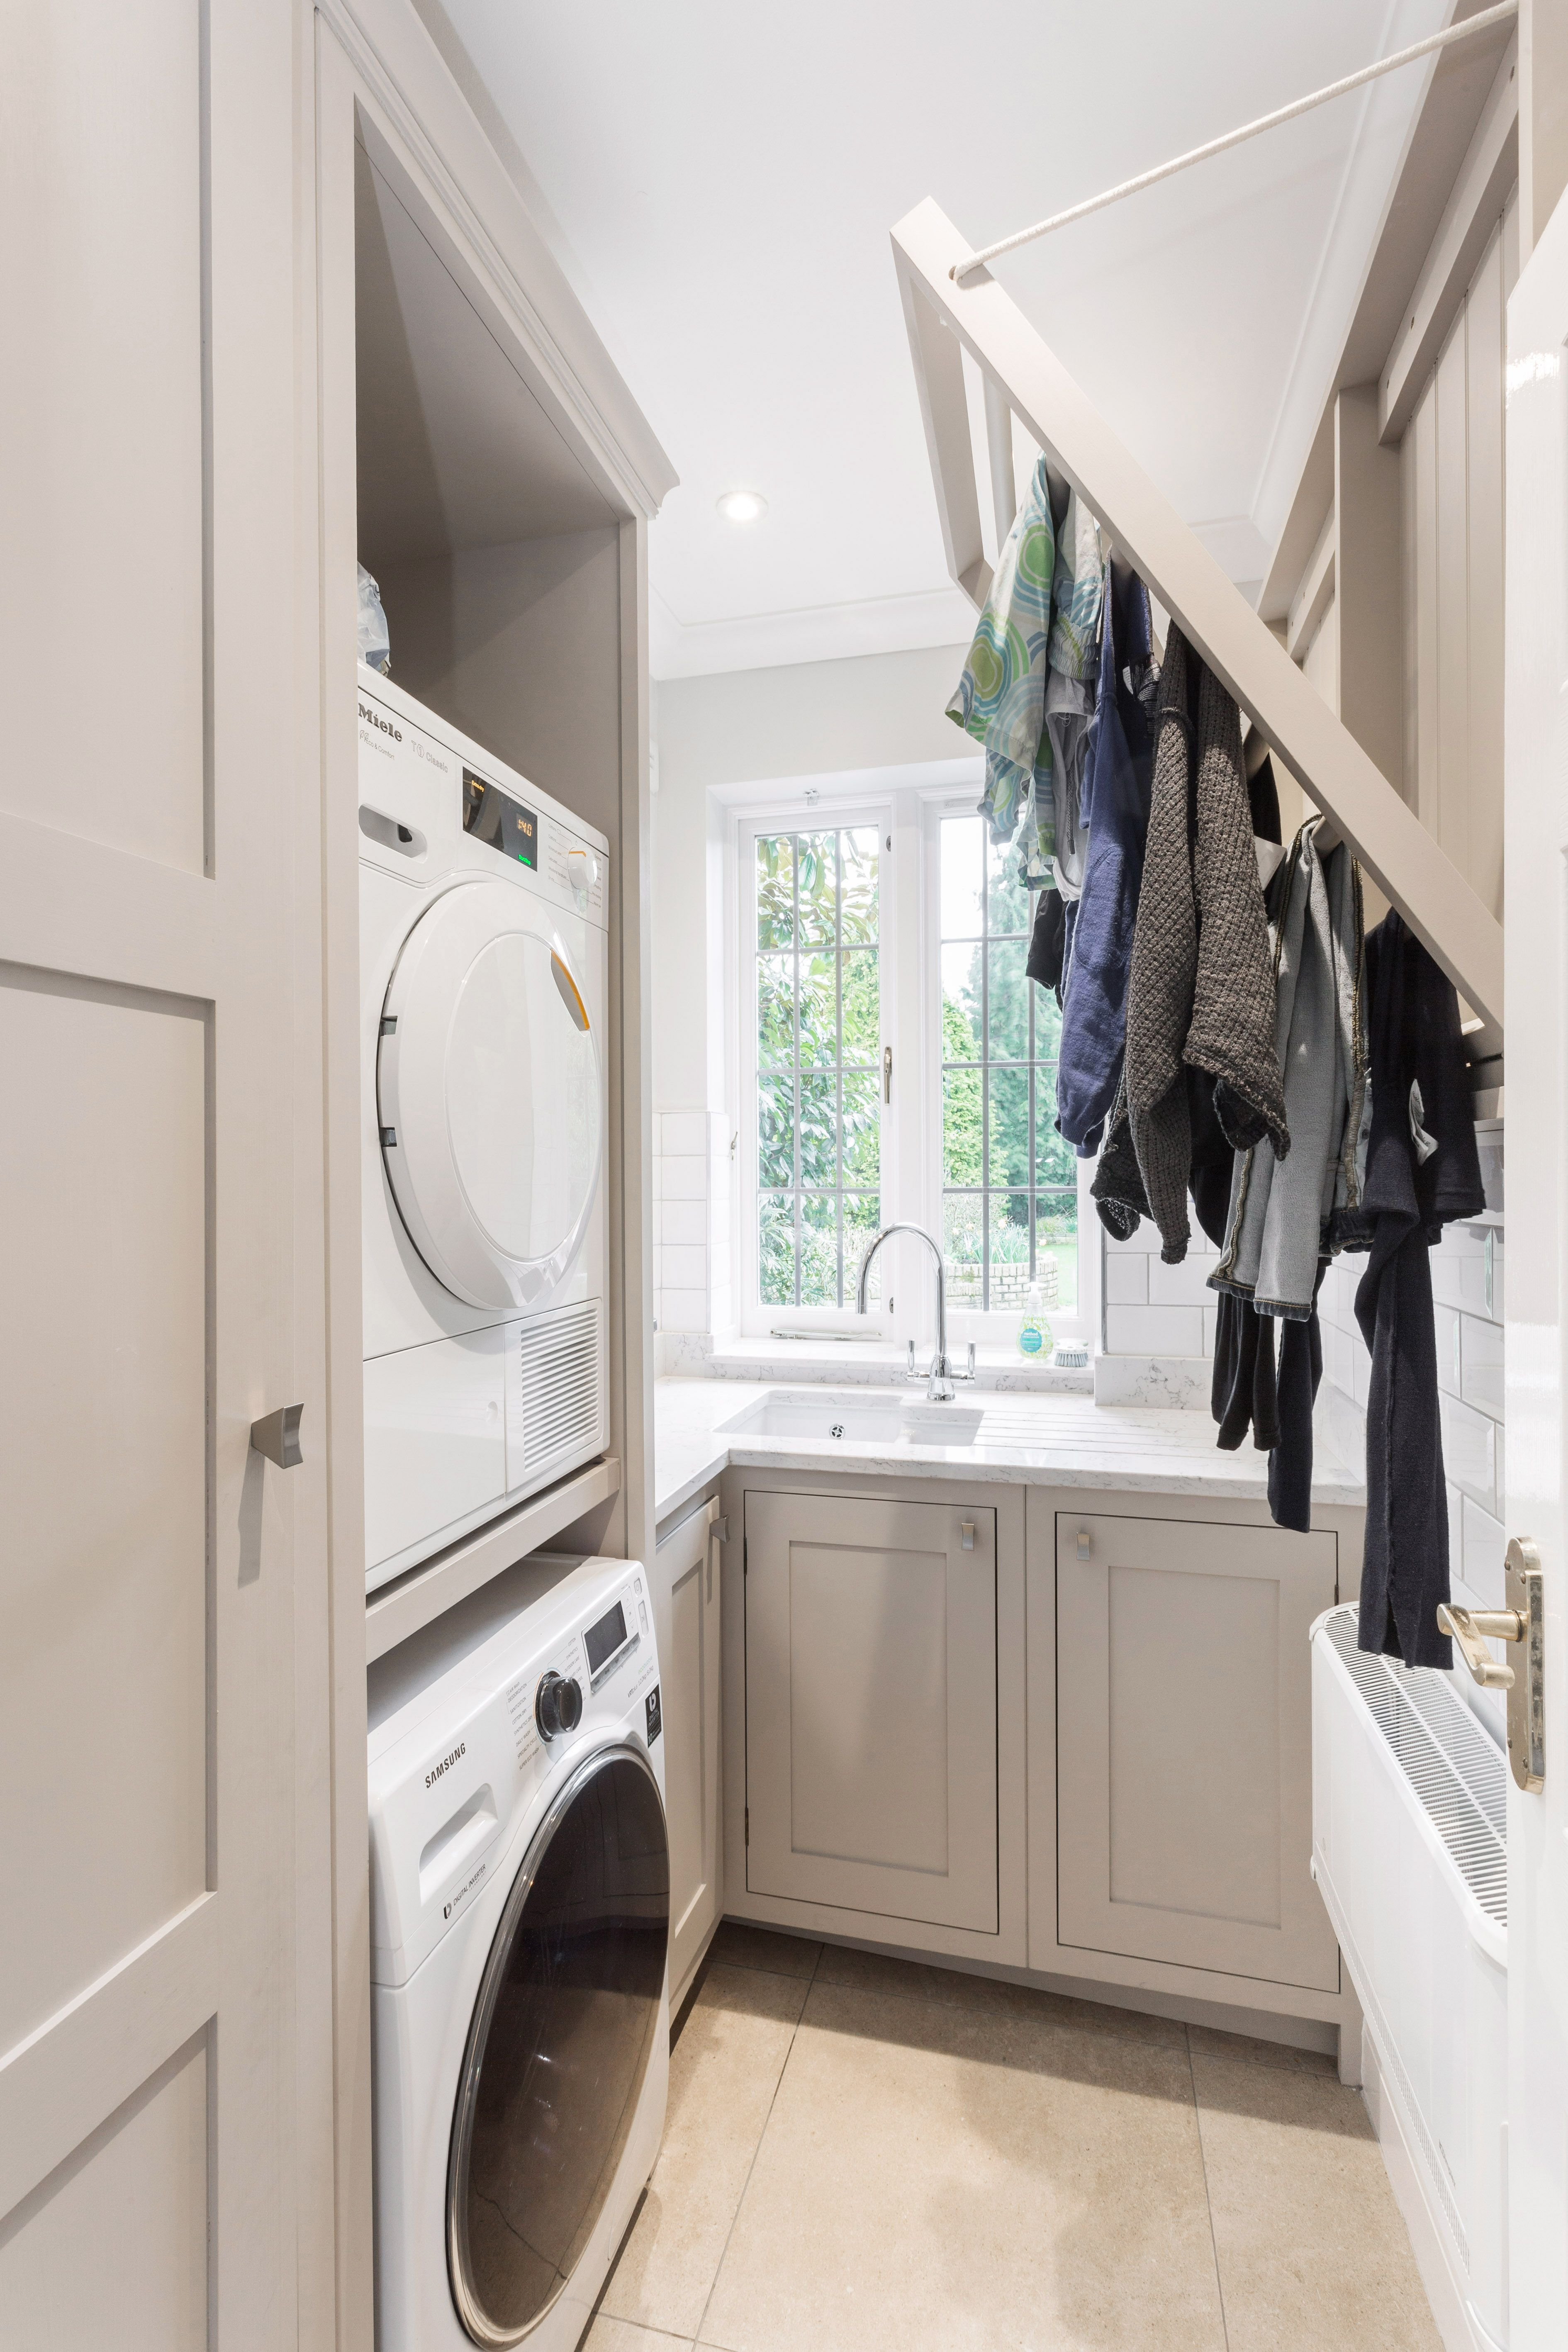 14 Clever Utility Room Design Ideas Laundry Room Design Small